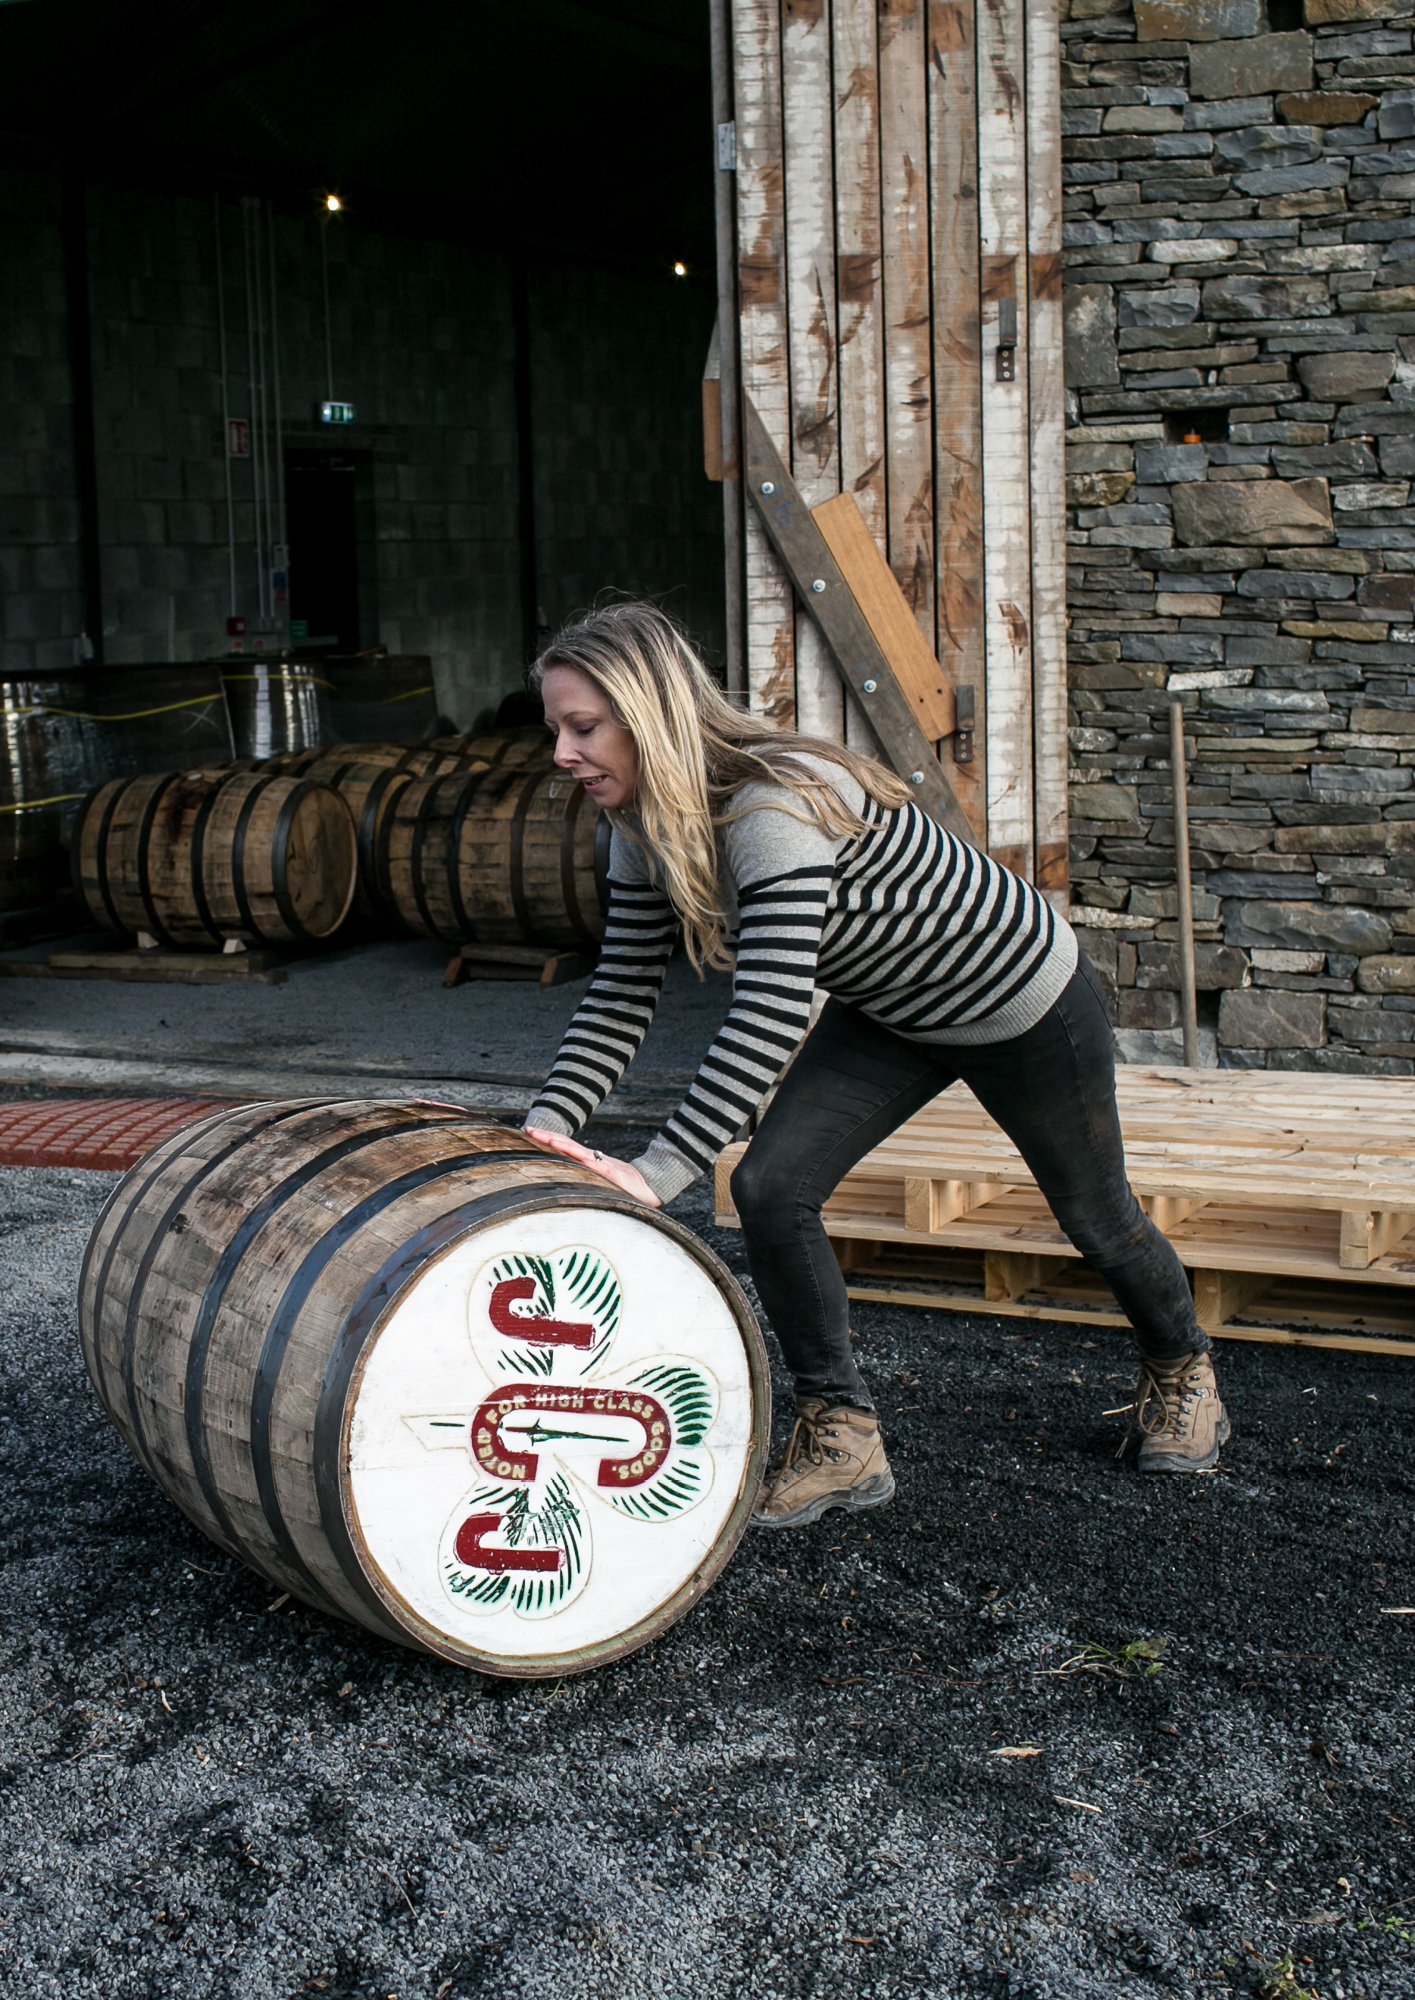 JJ Corry sources spirits from select Irish distilleries to mature it in its own bonded rackhouse